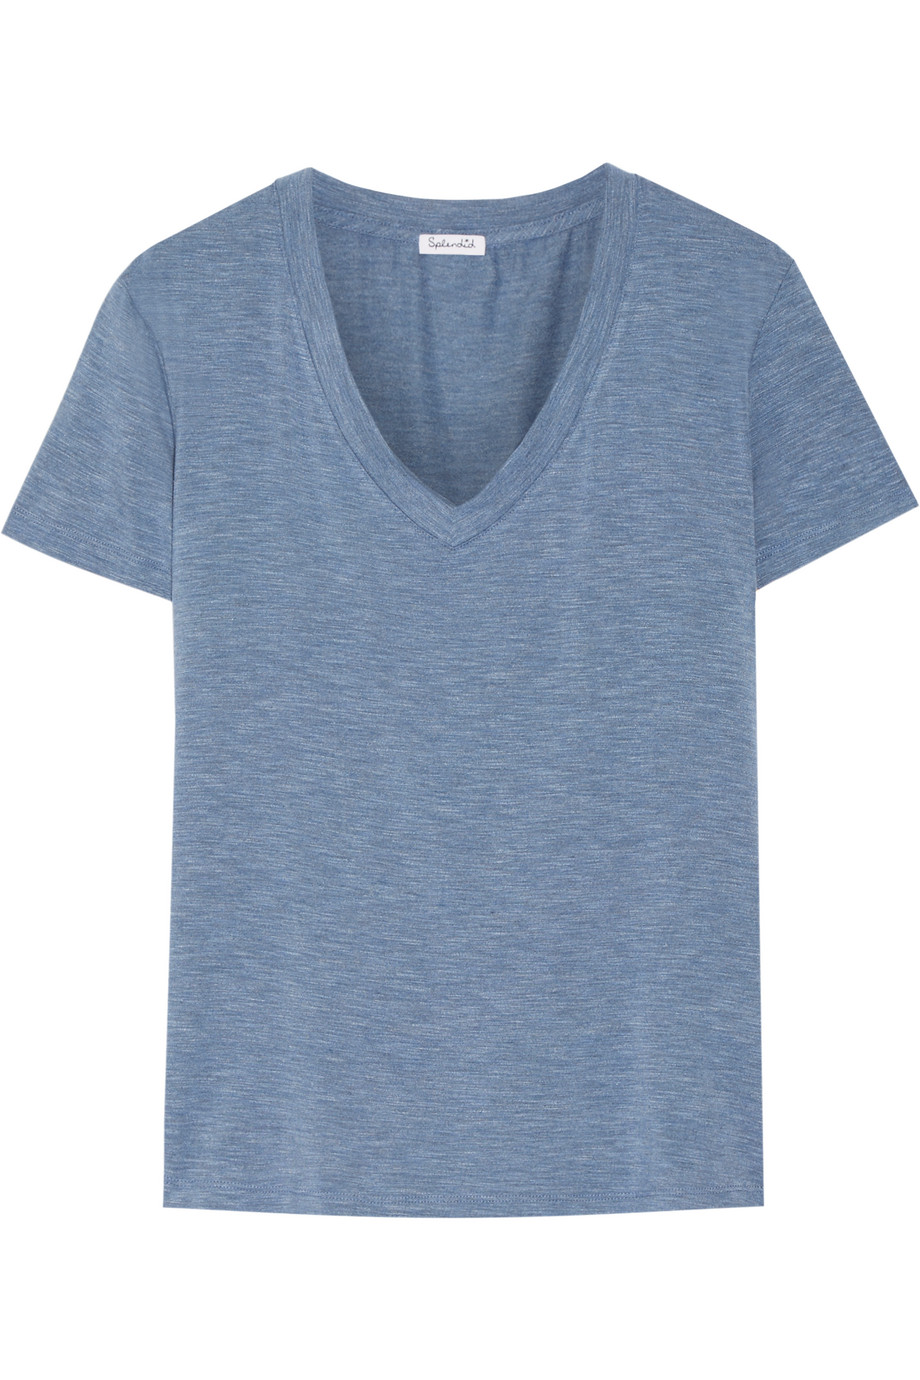 Splendid Stretch Modal-Jersey T-Shirt, Blue, Women's